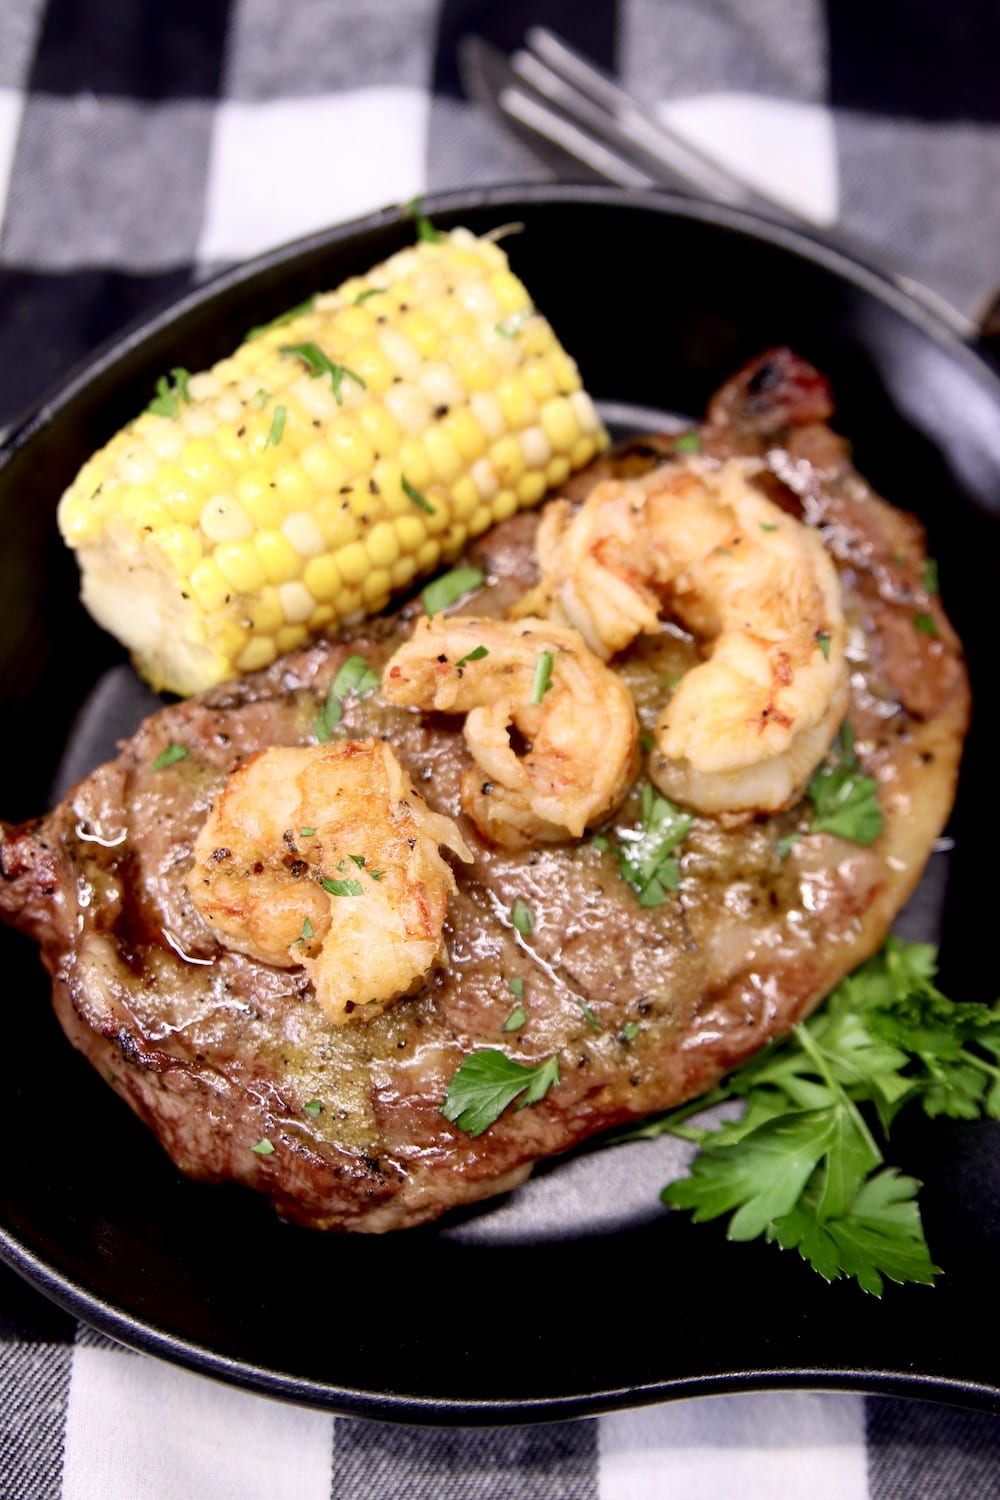 grilled steak, shrimp and corn on the cob on a black plate